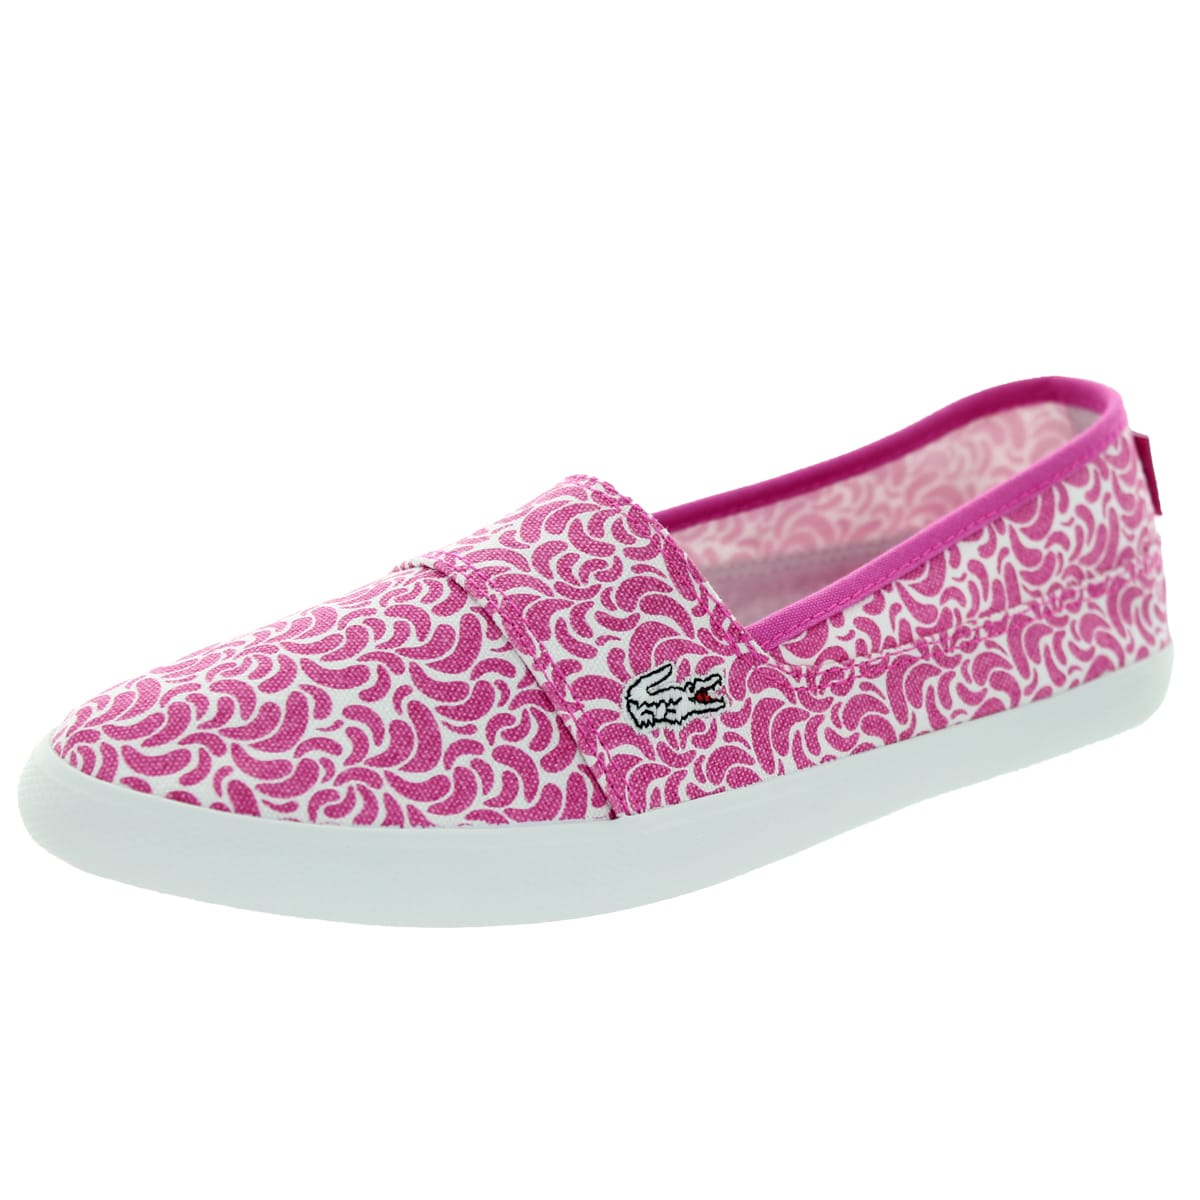 Marice Lmc Spw Pink/White Loafers